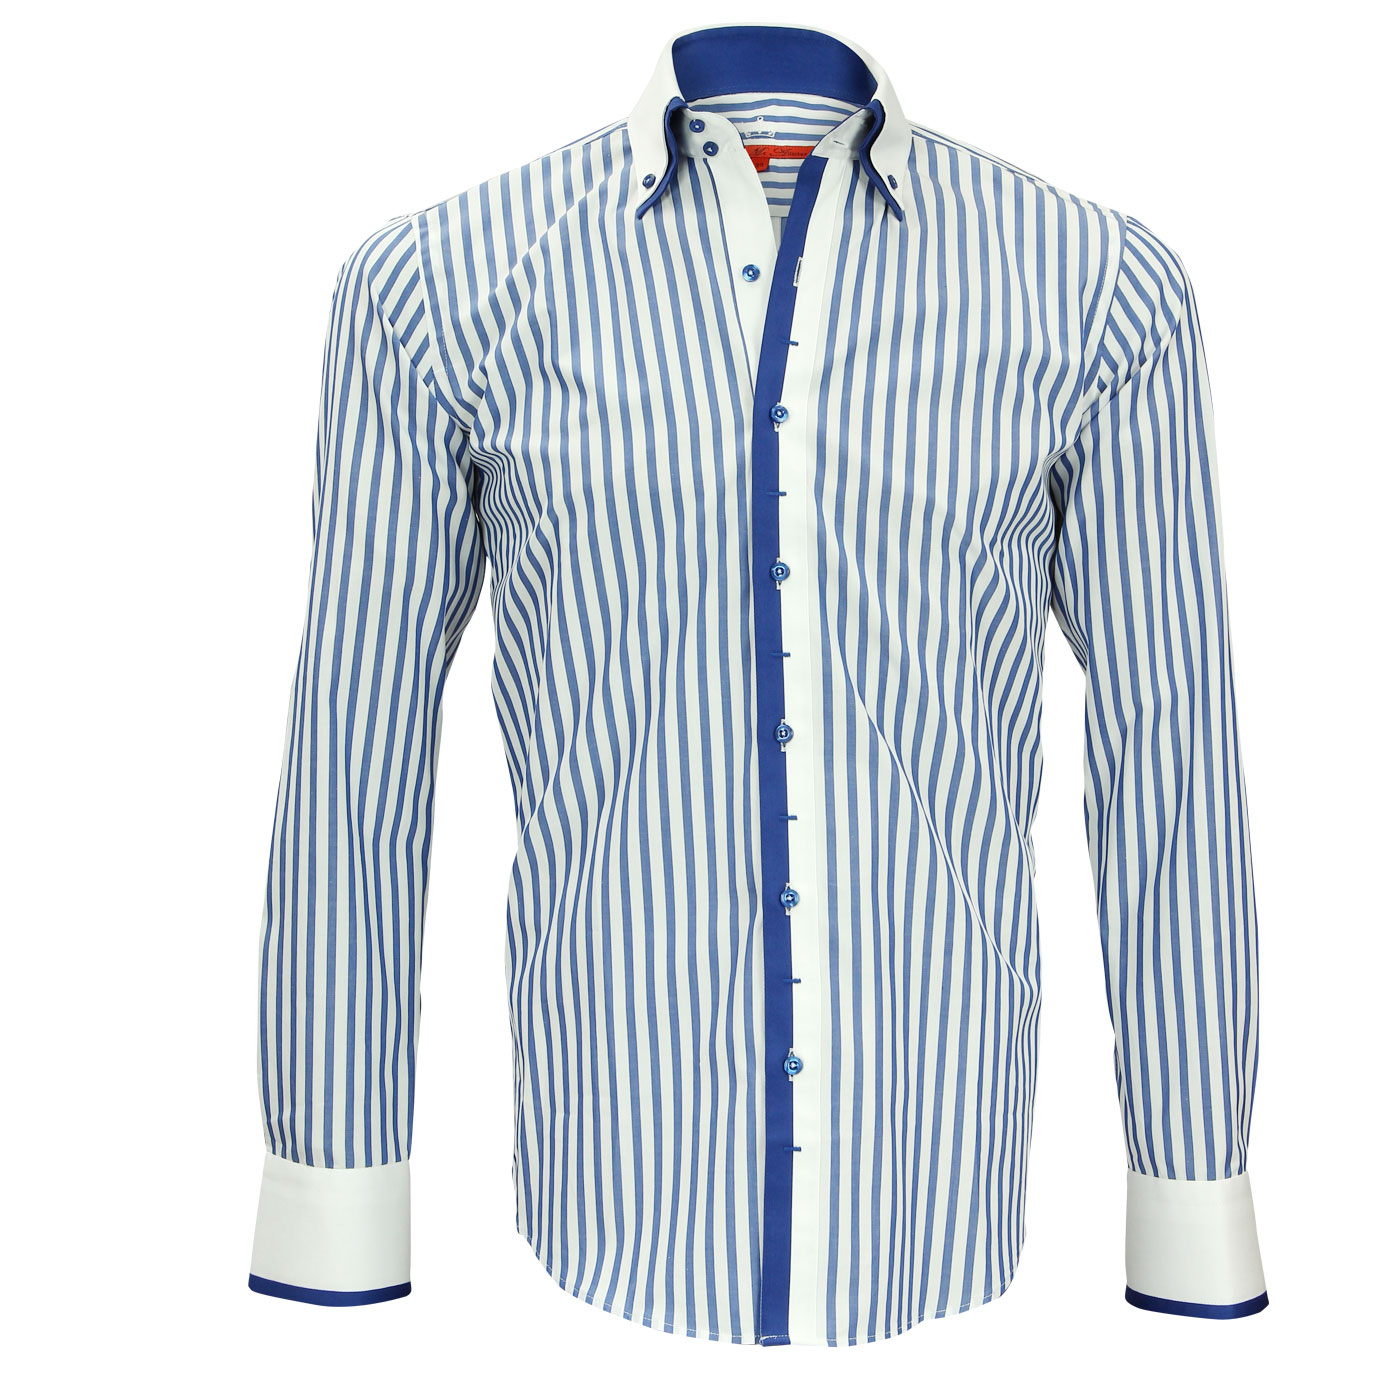 White collar shirt, men's shirt, shirt sales: Webmenshirts